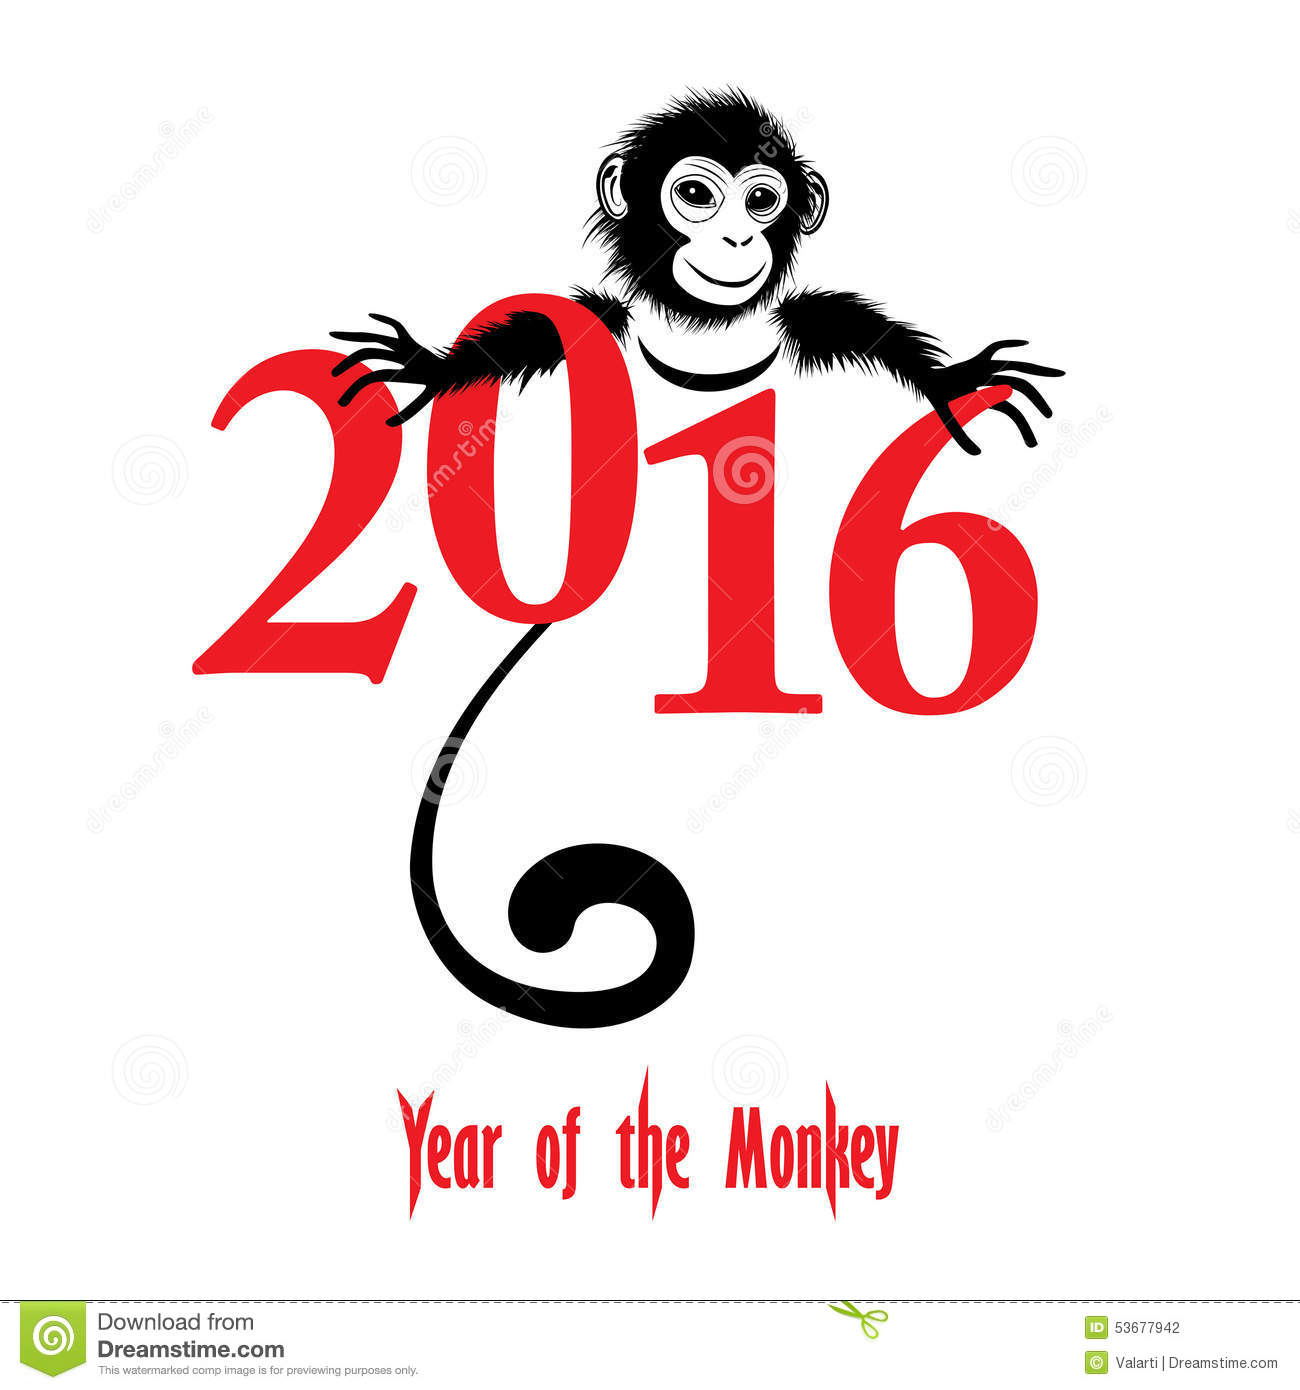 Chinese new year of. 2016 clipart red